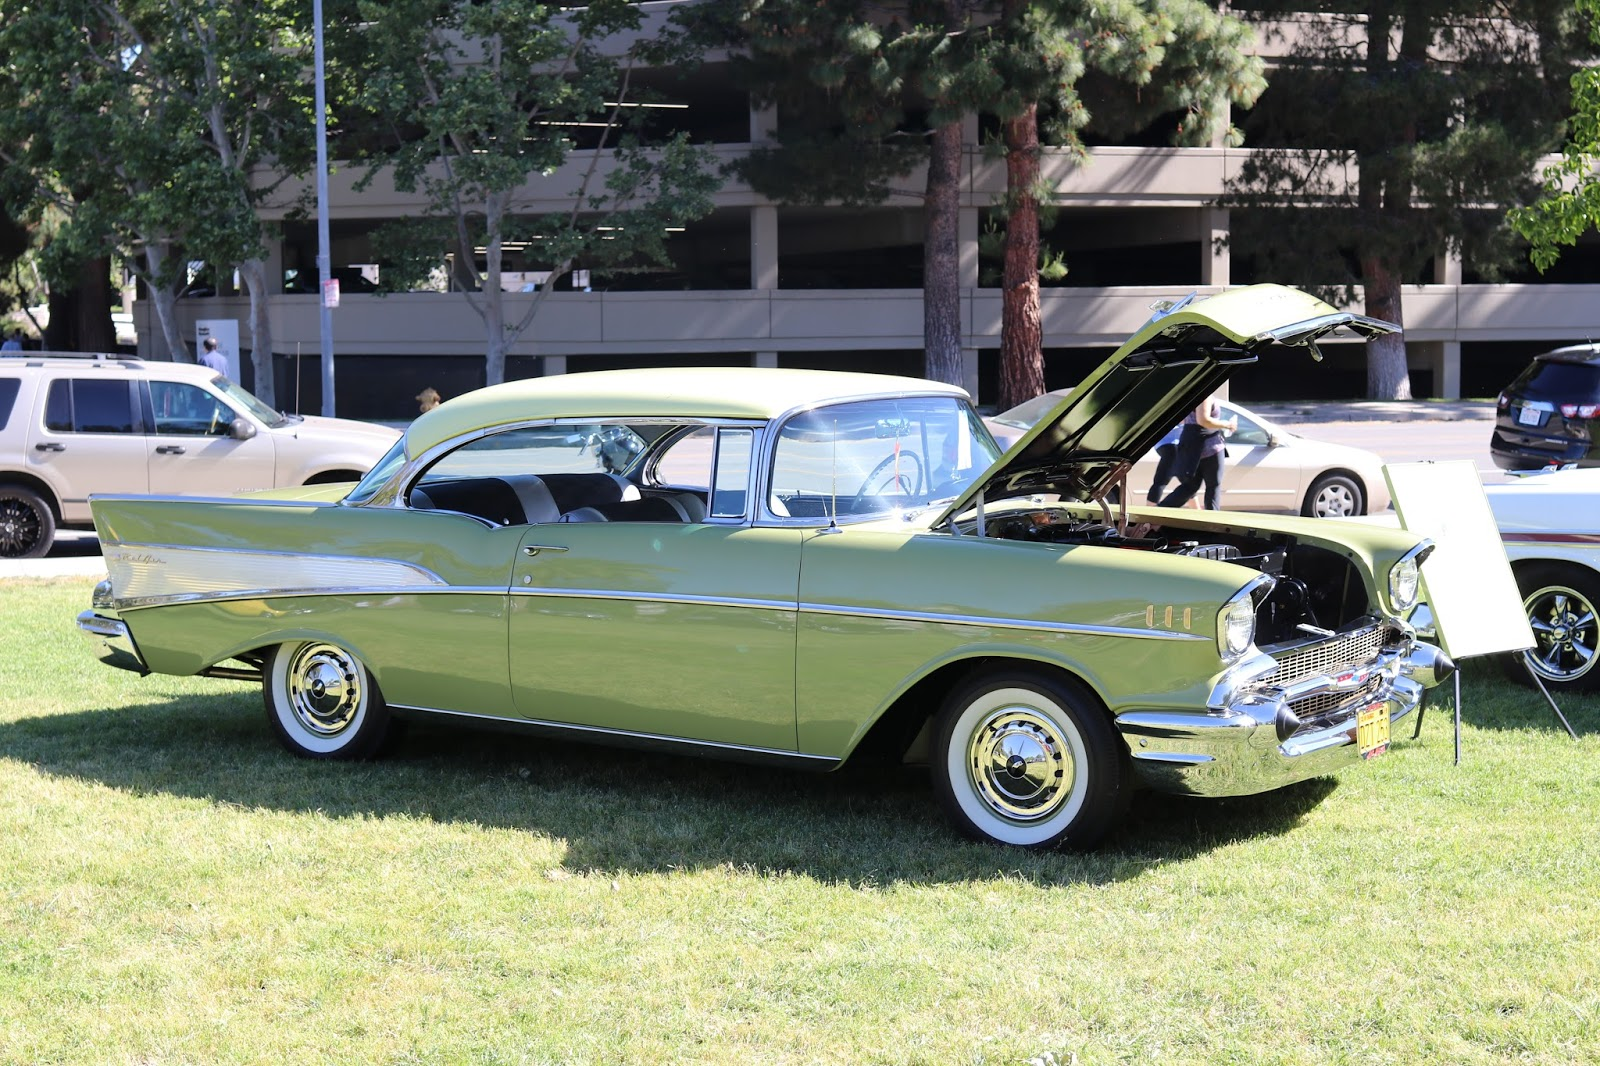 Covering Classic Cars Los Angeles Buick Club All GM Car Show - Socal car shows